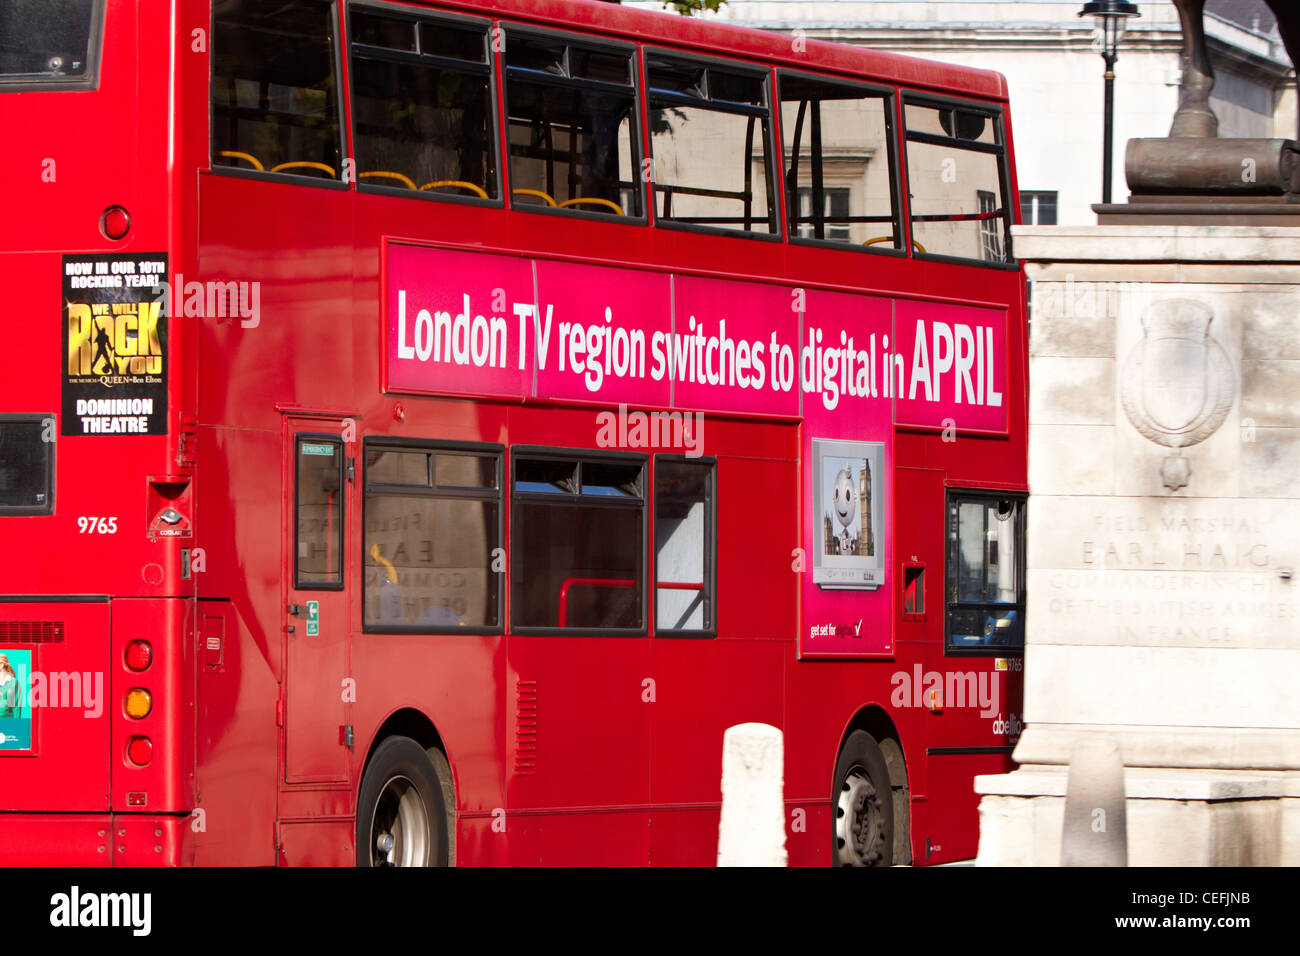 Red double decker bus advertising London digital TV switchover - Stock Image